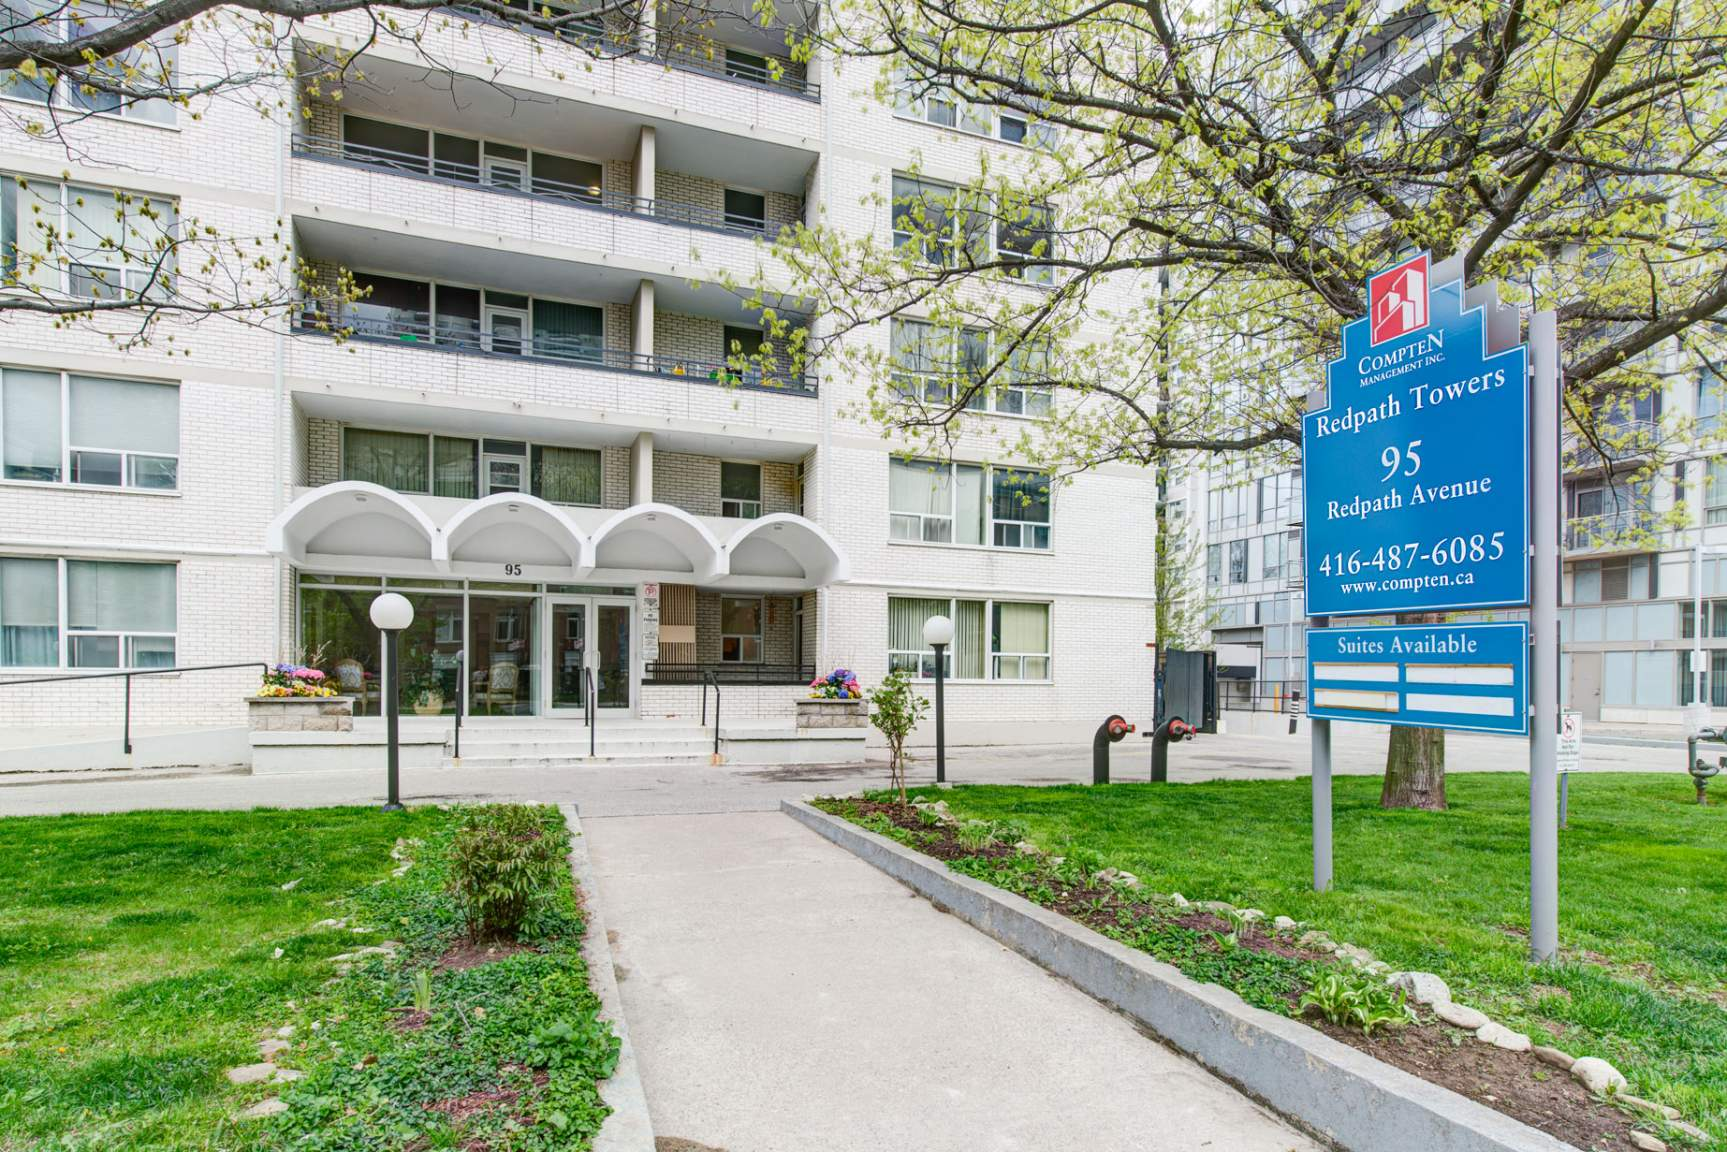 1 bedroom Apartments for rent in Toronto at Redpath Tower - Photo 02 - RentersPages – L138725